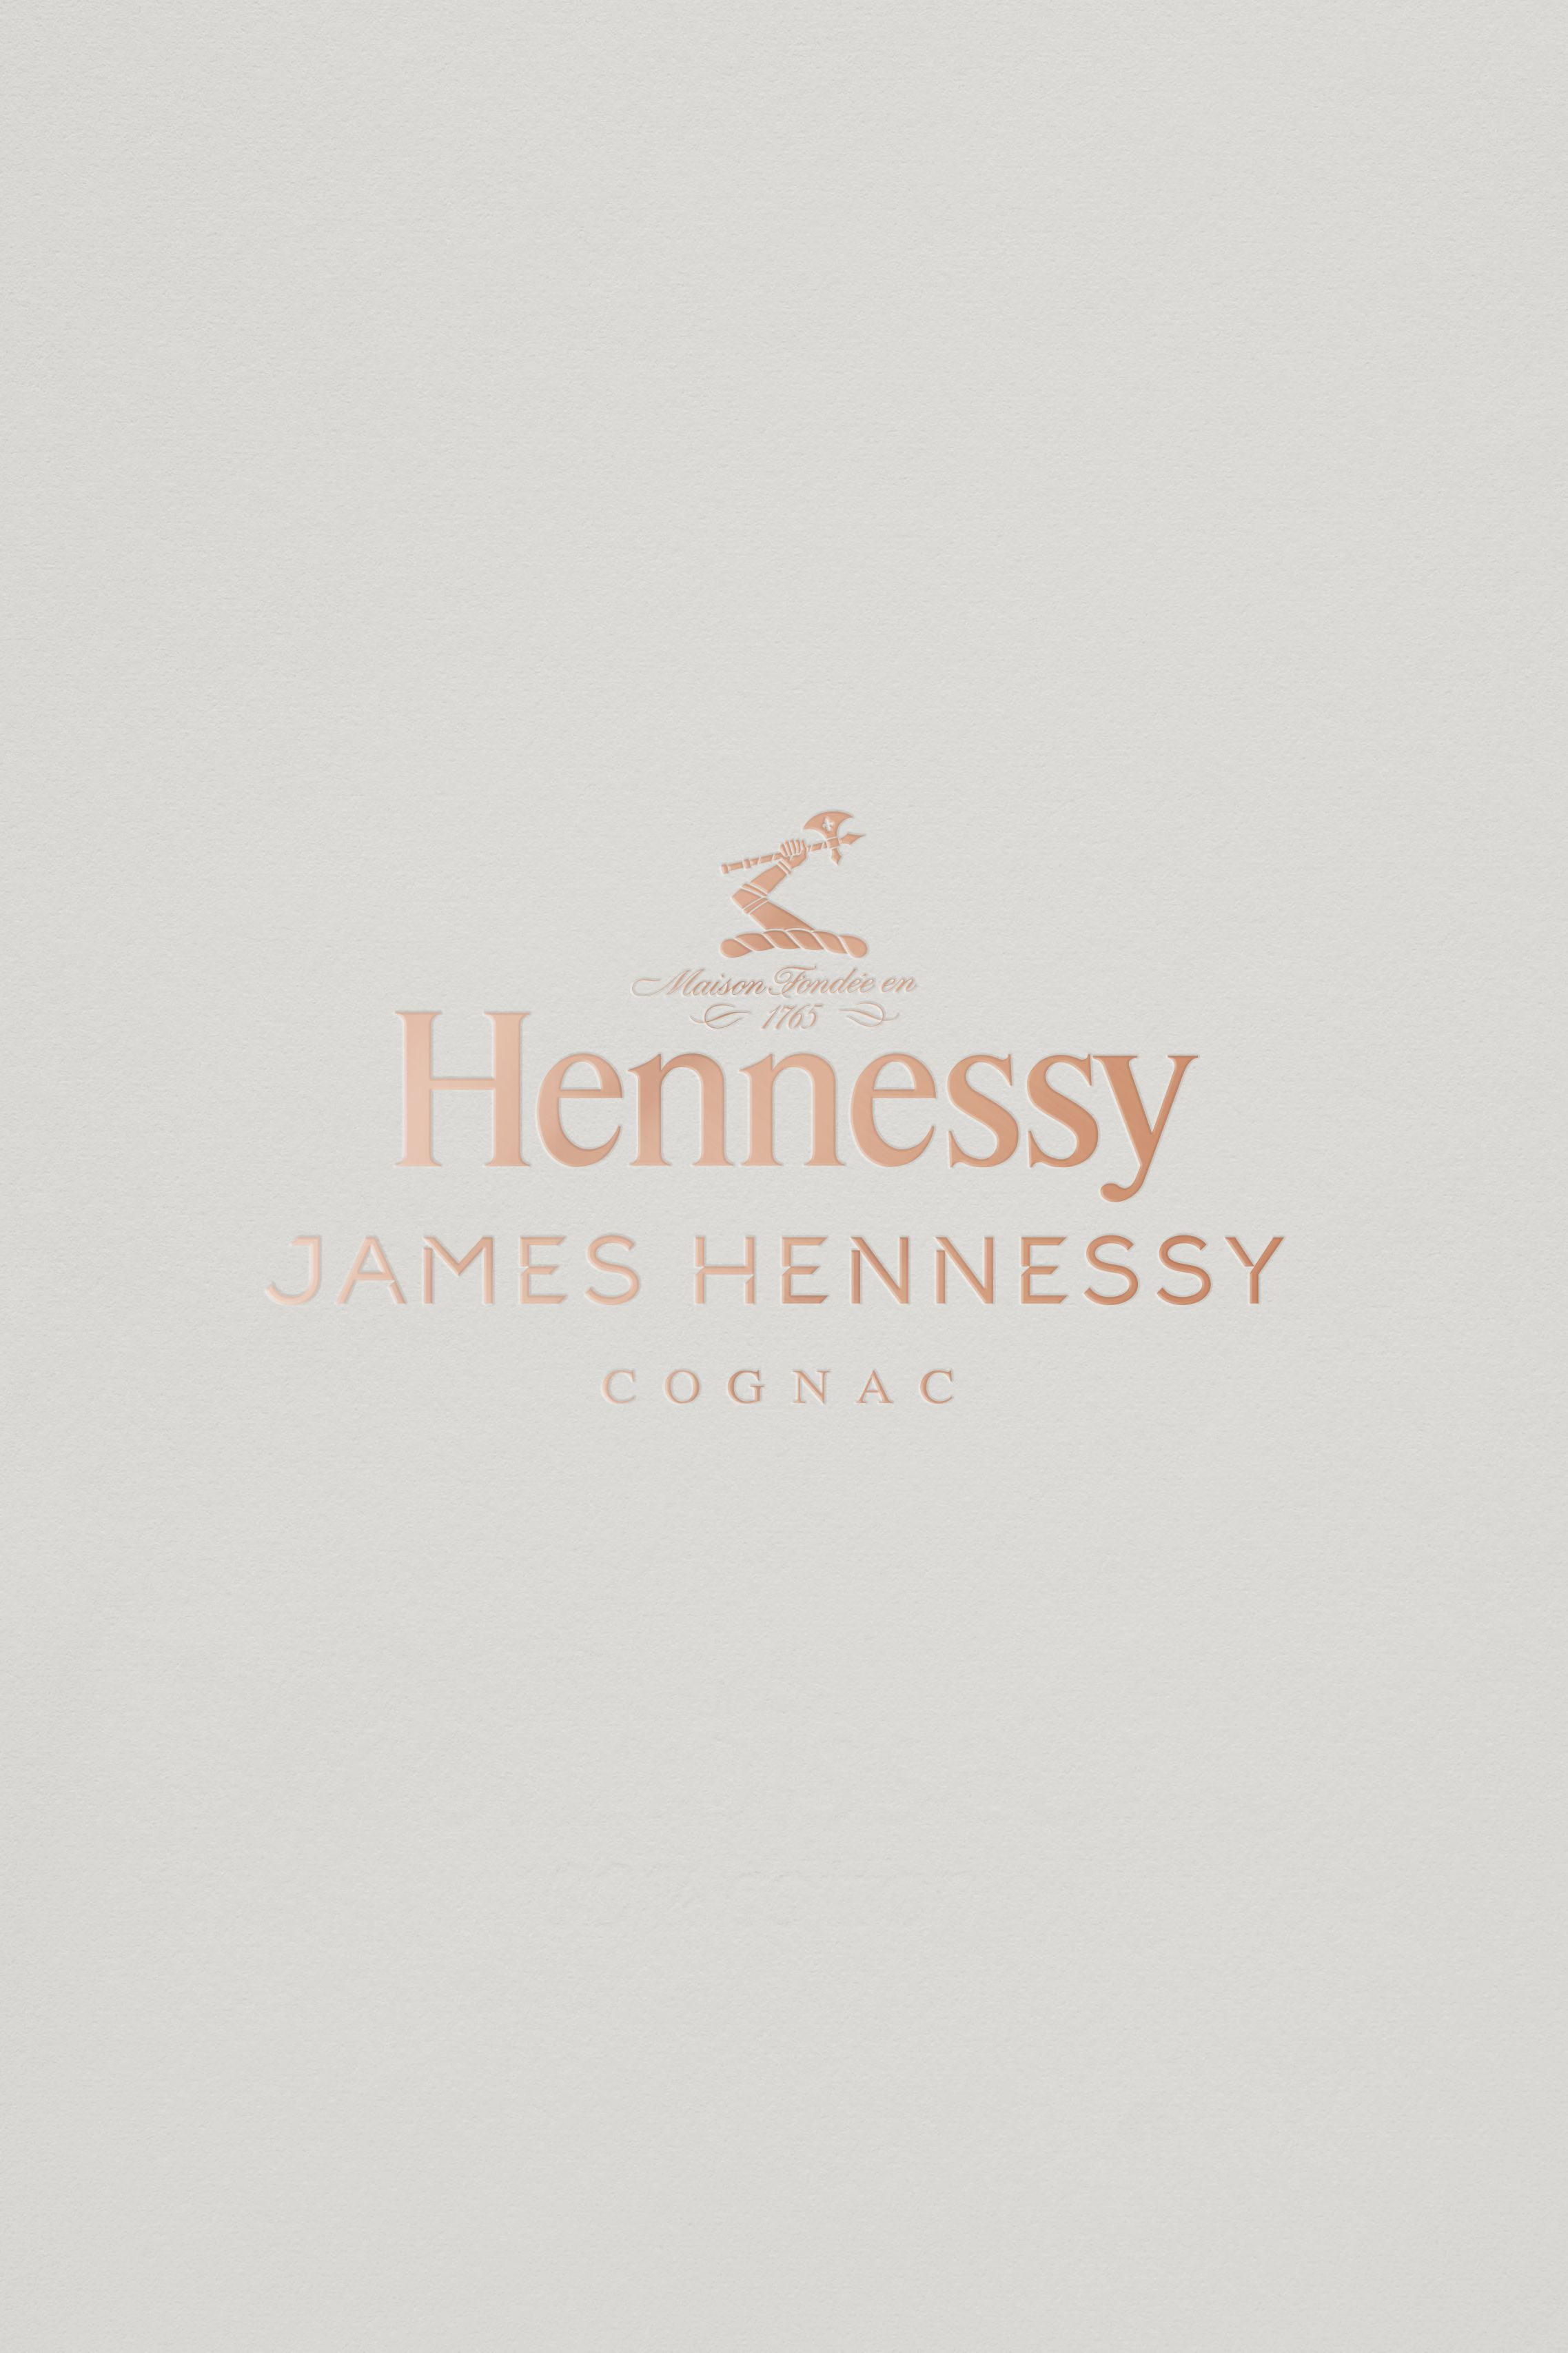 James Hennessy logo design